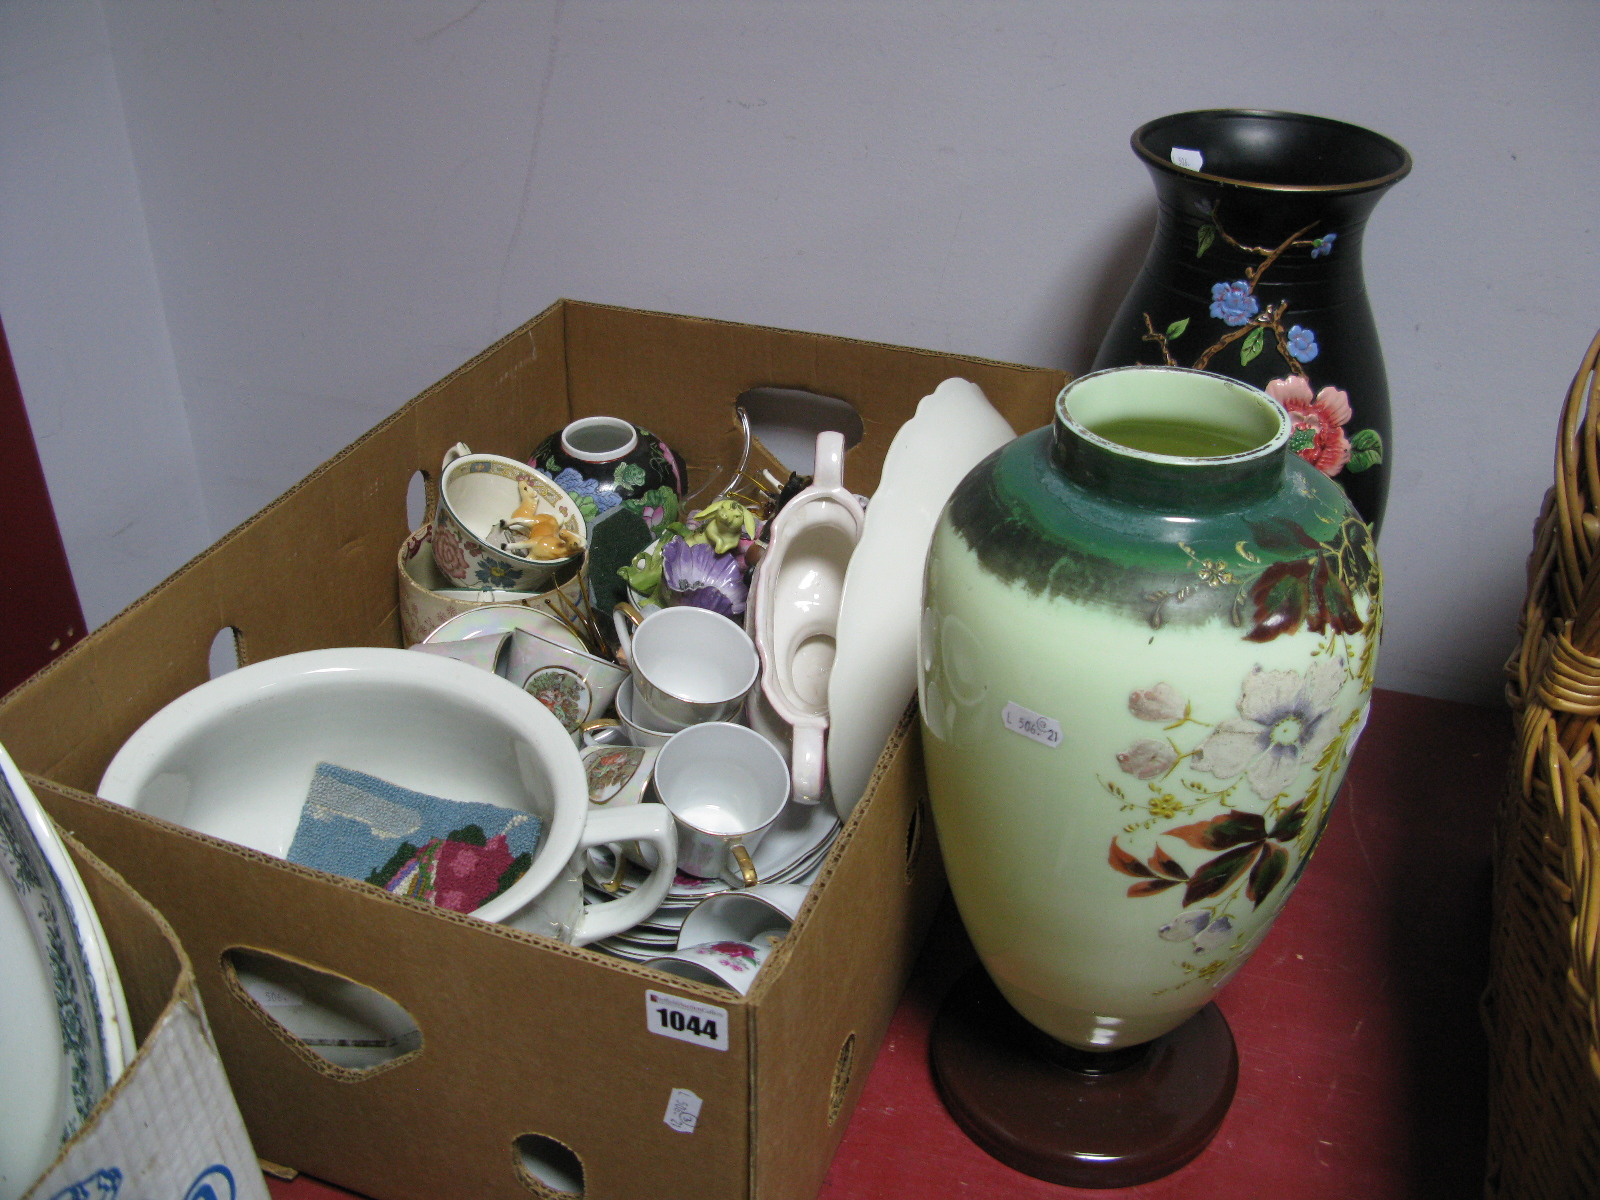 Lot 1044 - Teaware, miniatures, chamber pot, painted ovoid glass vase, Brentleigh example.